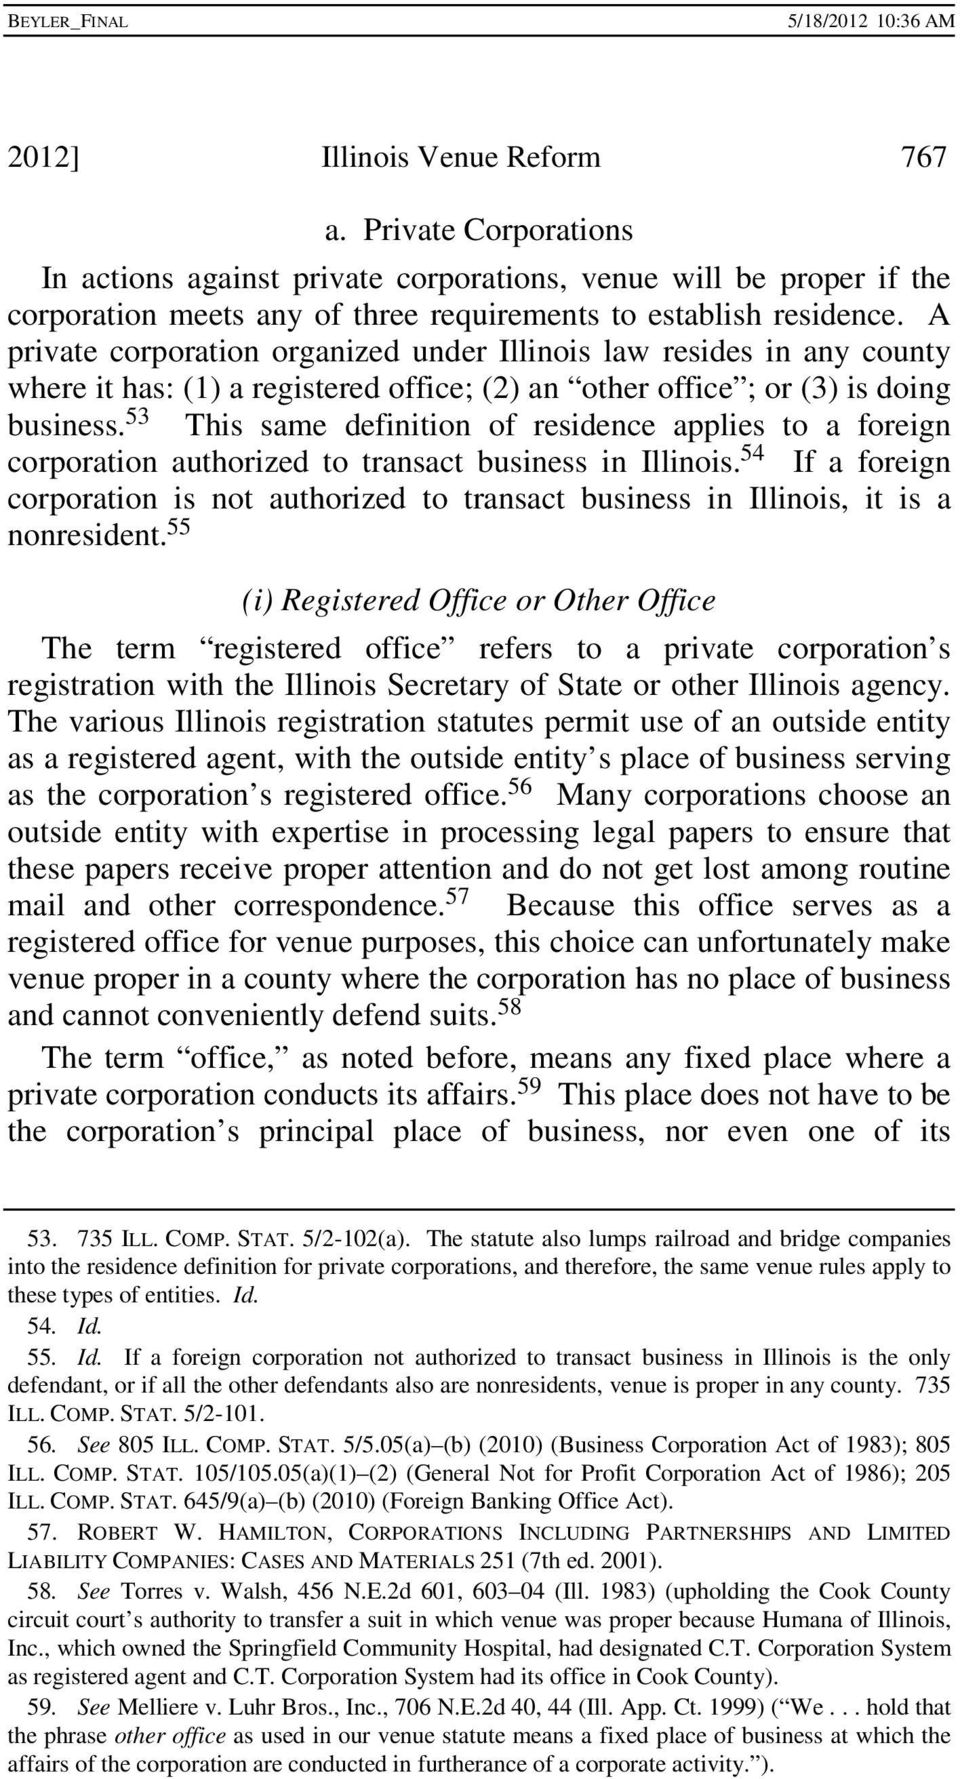 53 This same definition of residence applies to a foreign corporation authorized to transact business in Illinois.